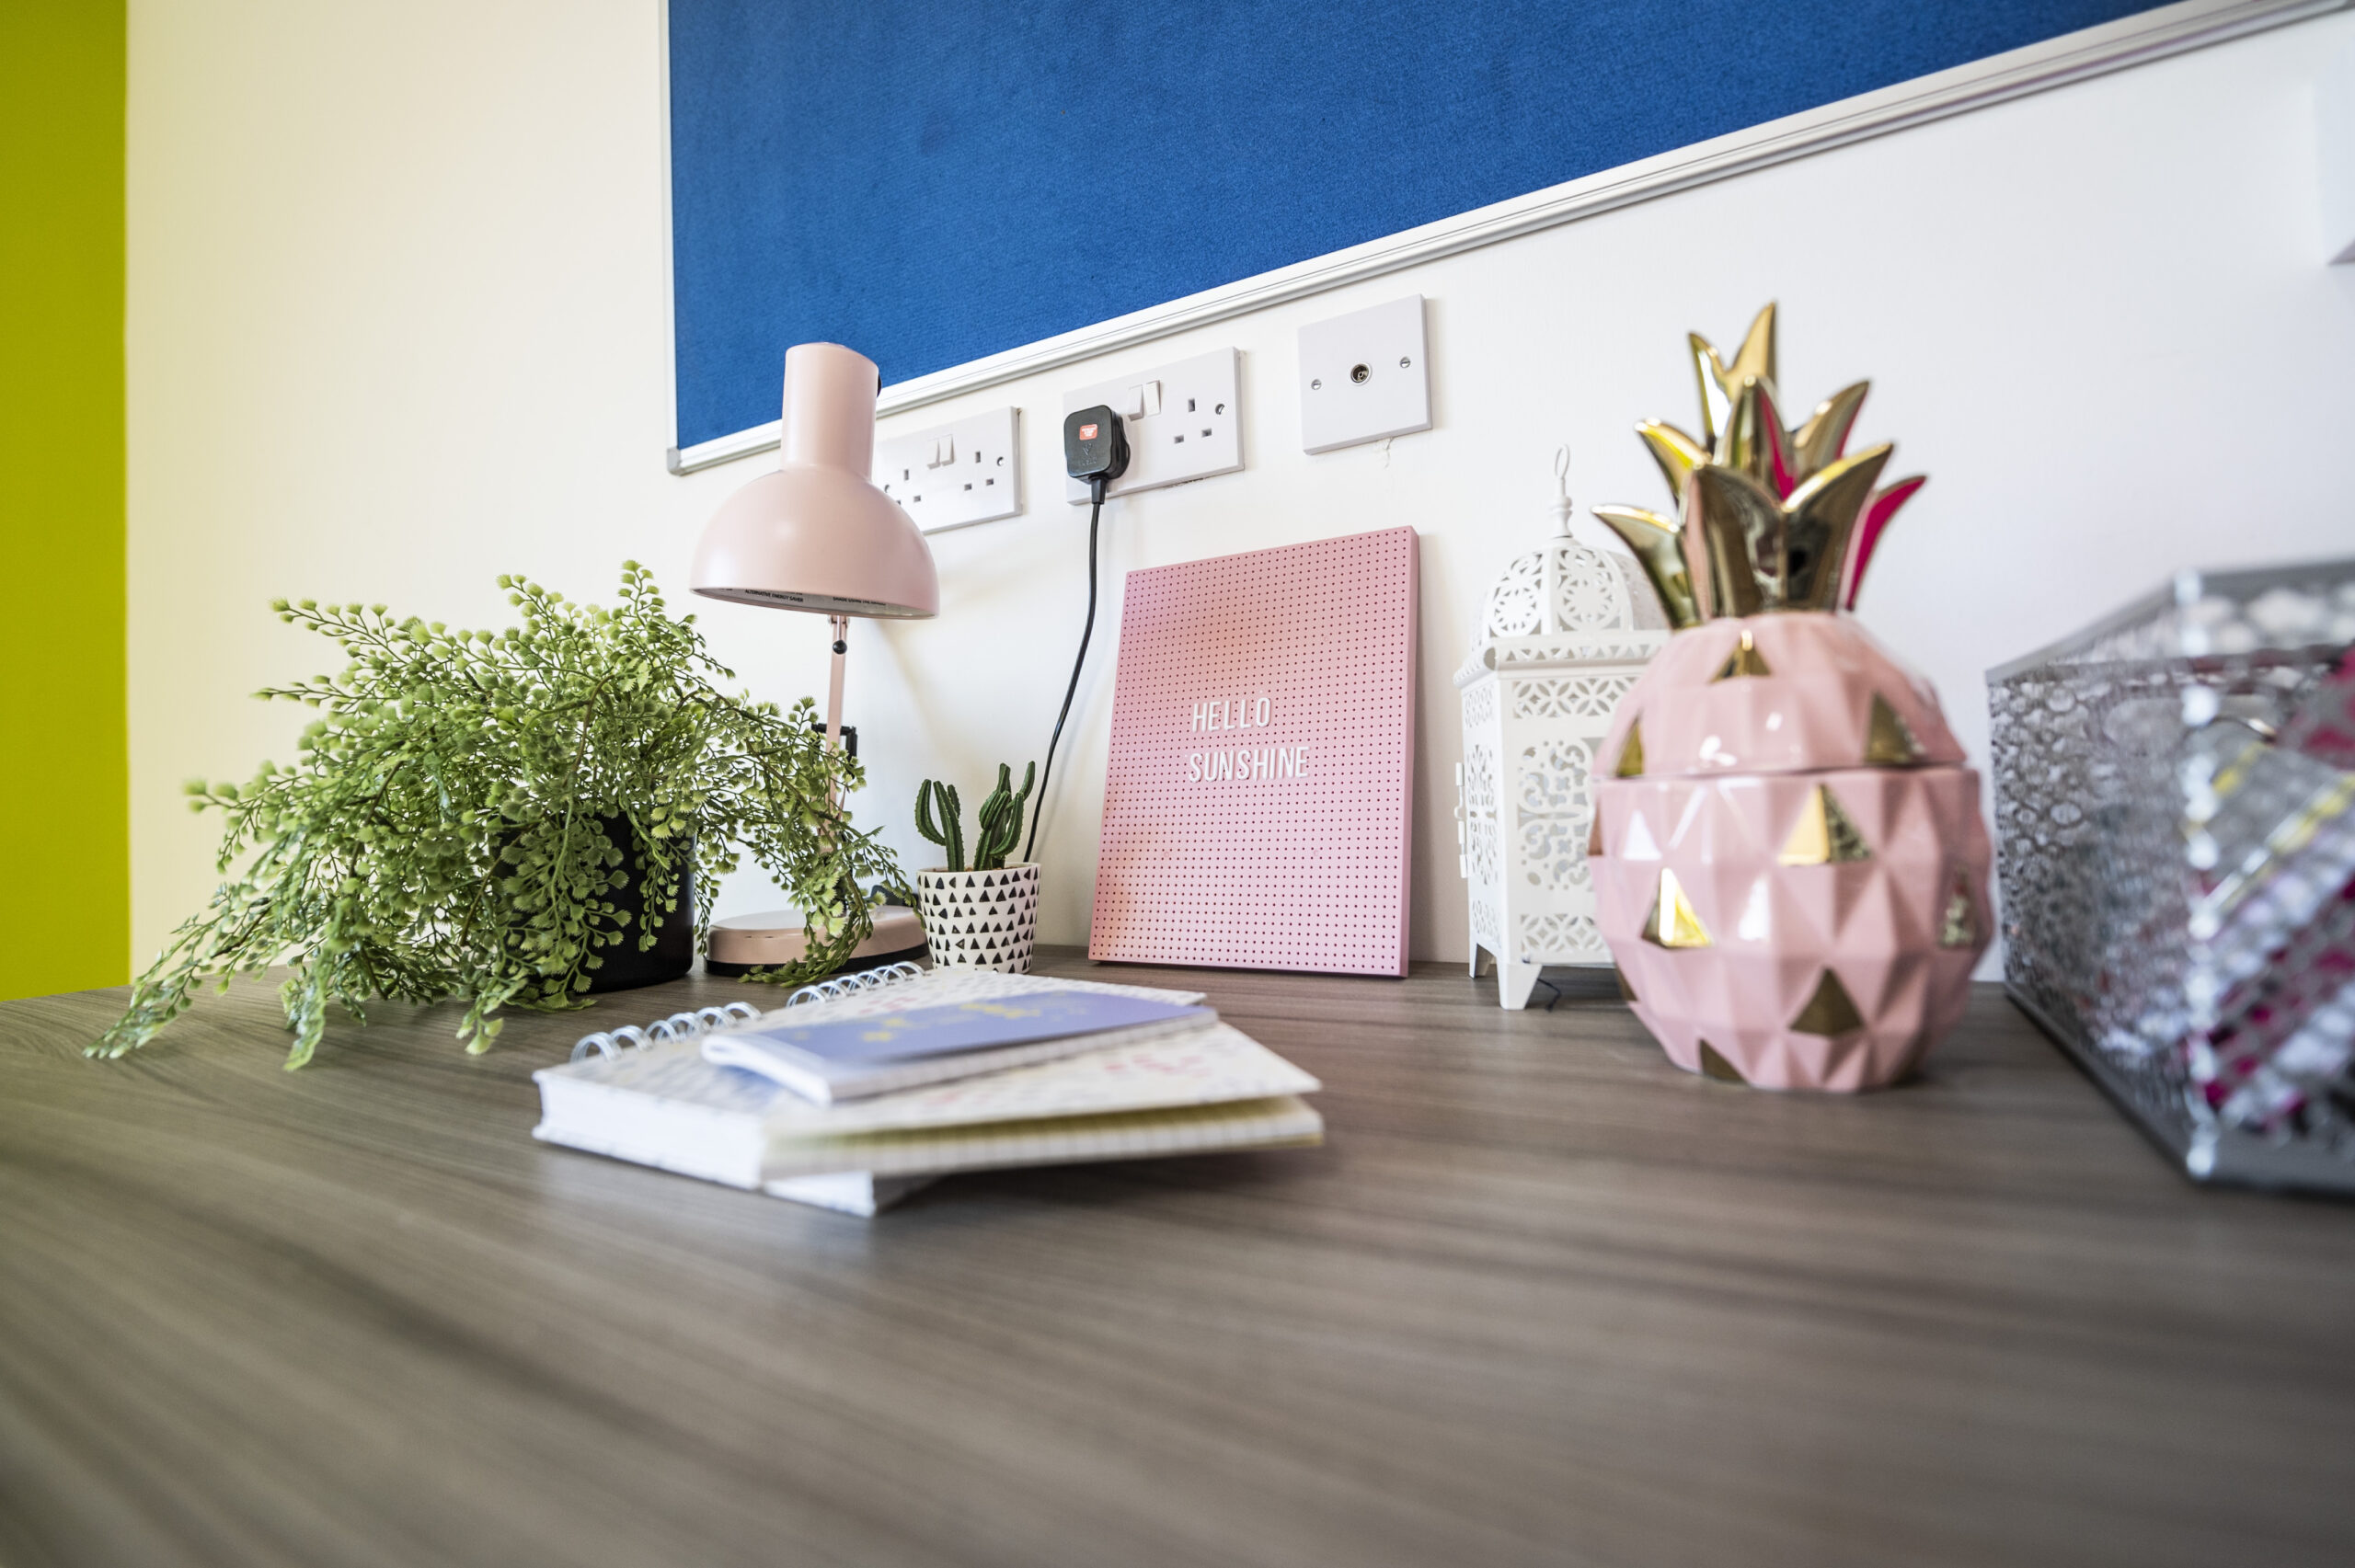 desk and chair set up in student's studio flat